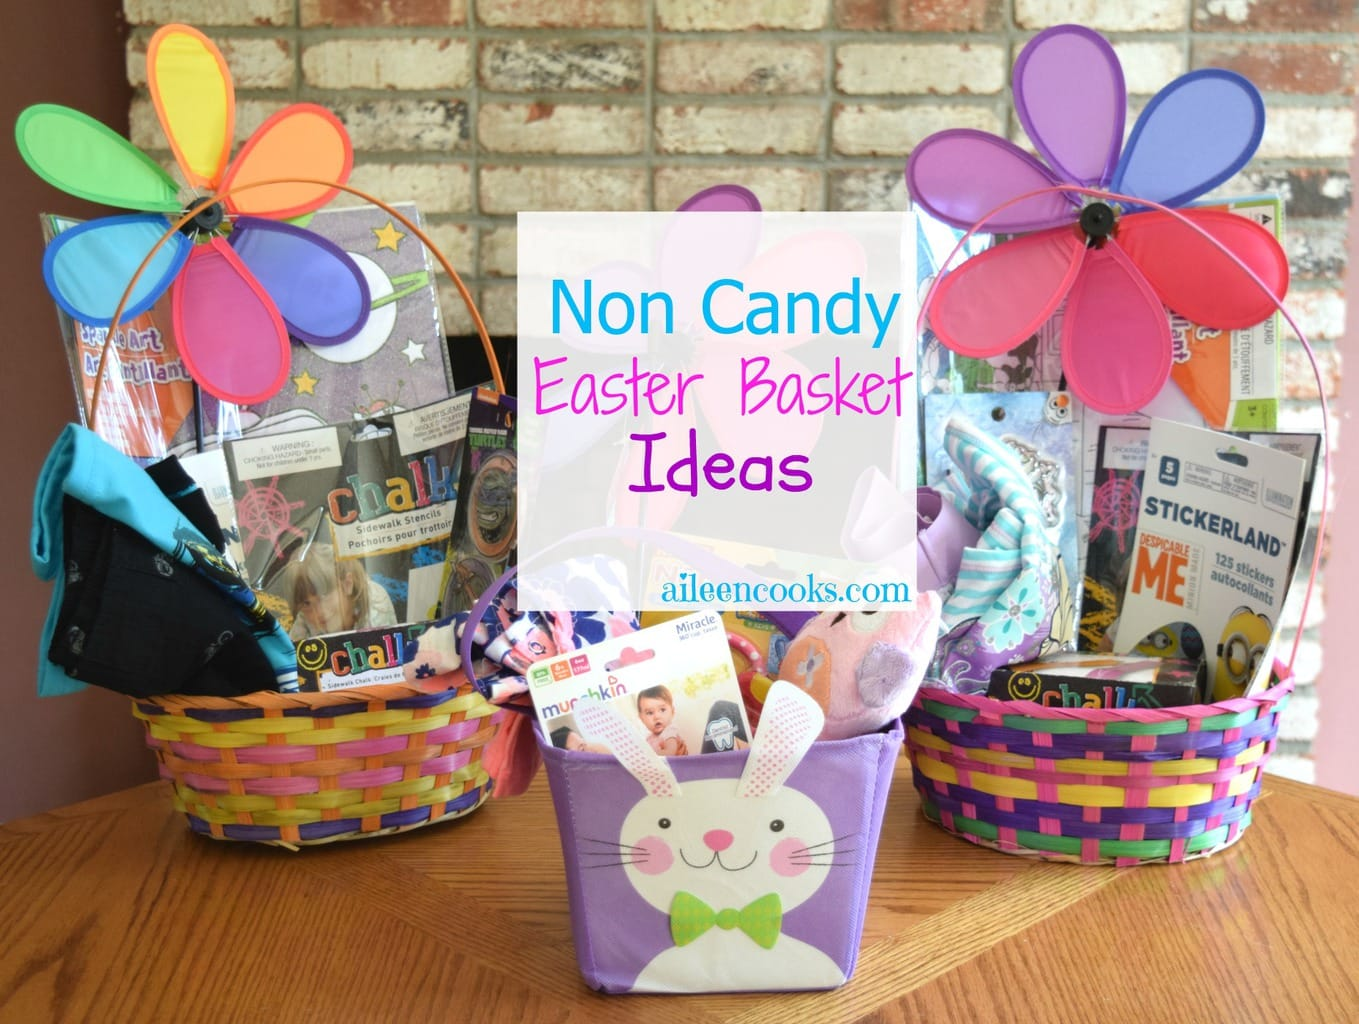 Non candy easter basket ideas aileen cooks non candy easter basket ideas for baby preschooler and toddler age groups most negle Choice Image